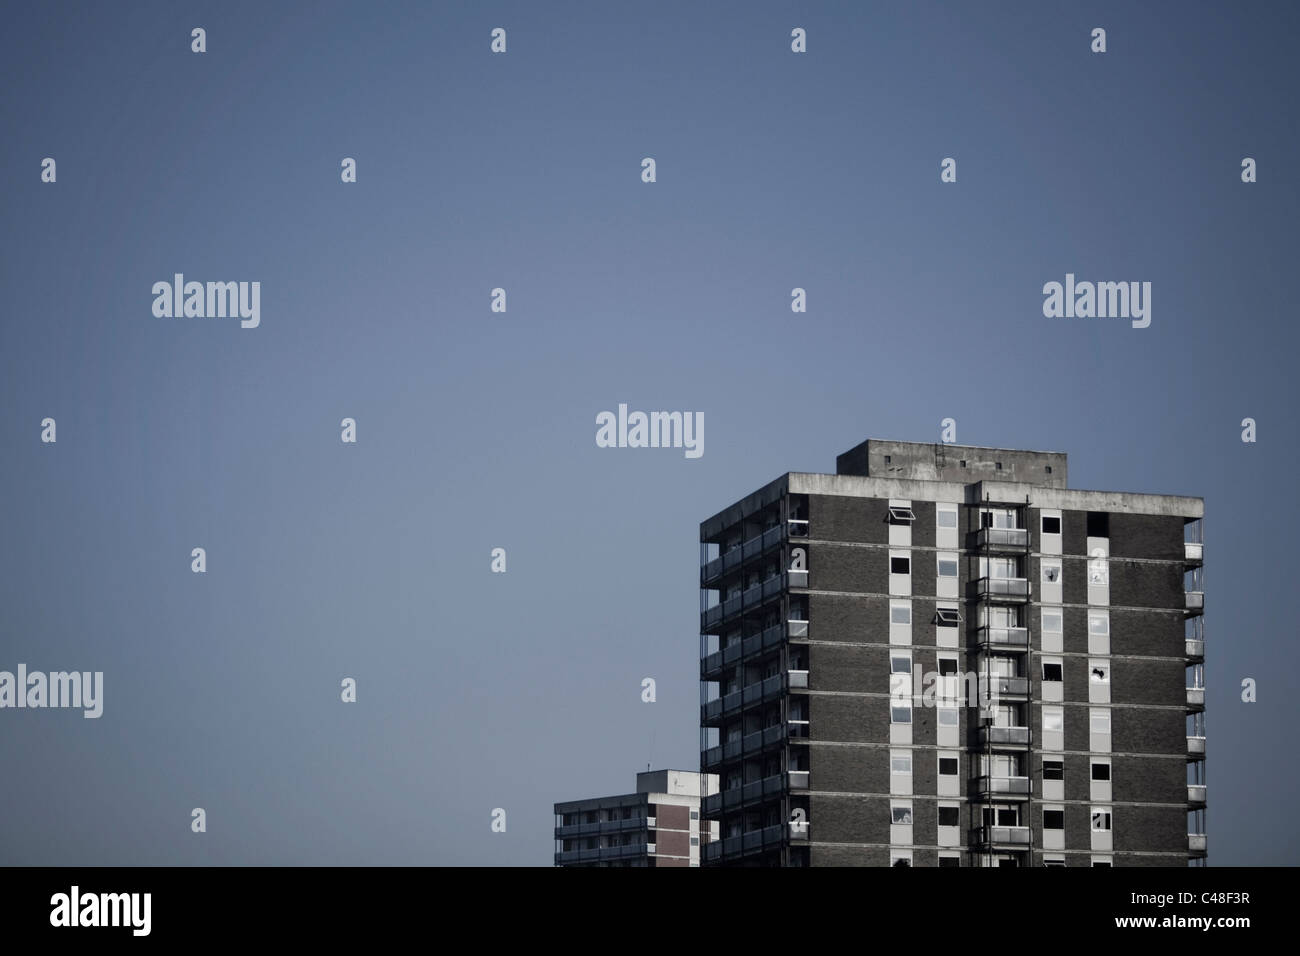 Two vacant tower blocks stand side-by-side on the border of Ancoats and Miles Platting in Manchester. - Stock Image